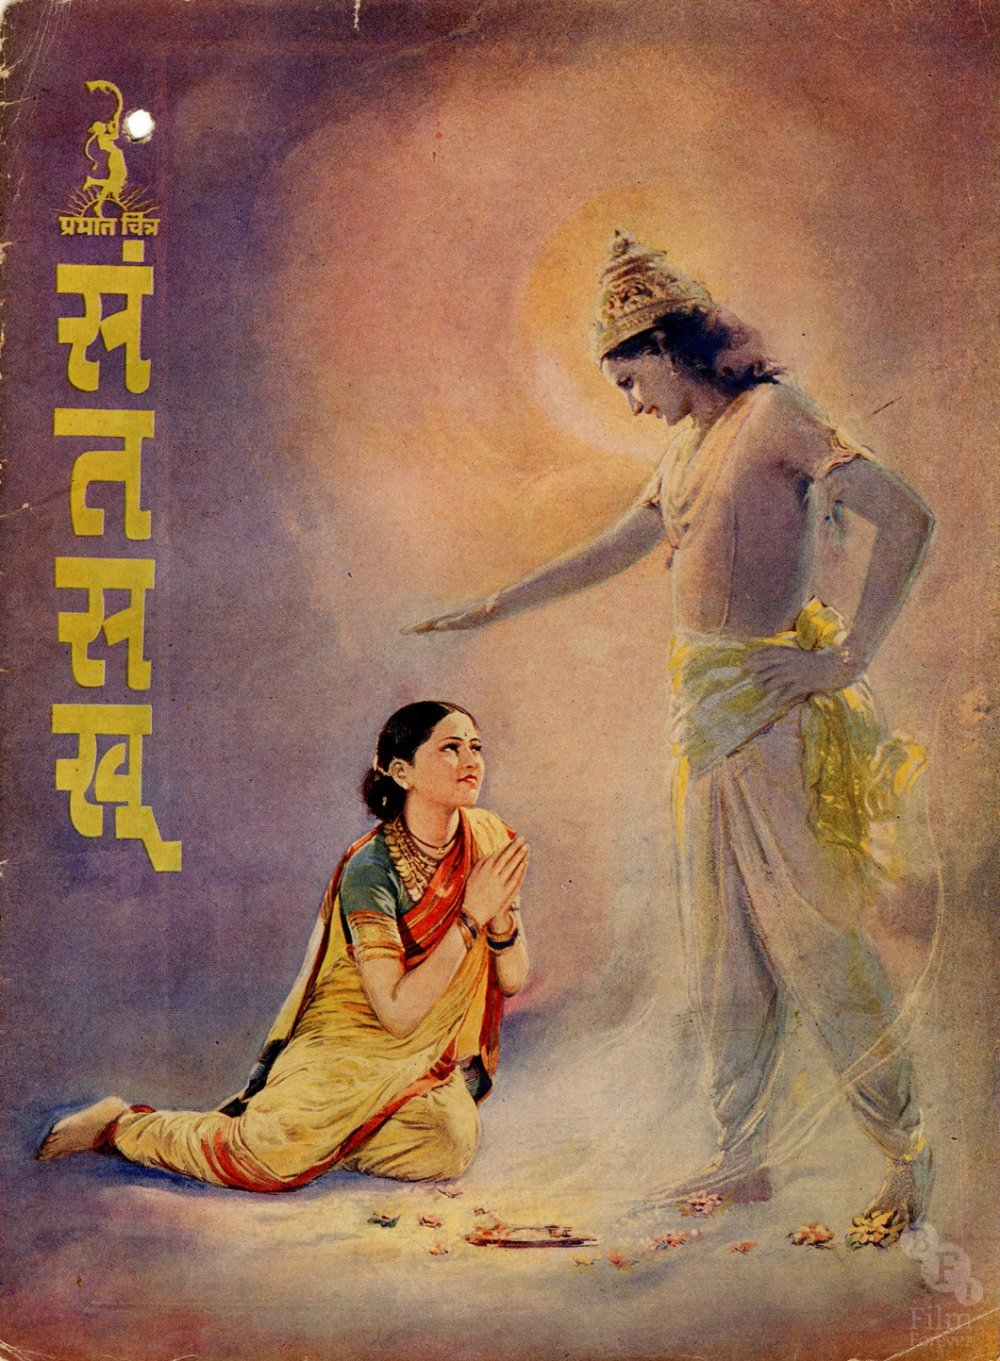 <strong>Sant Sakhu (1941)</strong>  This Hindi-Marathi devotional film is based on the life of Sant Sakhubai, a follower of the Bhakti movement. A number of early Indian films featured religious or mythological narratives, but these were gradually supplanted by contemporary social dramas, such as Divorce (1938), after the introduction of sound in the 1930s. This booklet artwork displays the influence of painter Ravi Varma, whose depictions of gods and mortals had a great impact on early cinema art